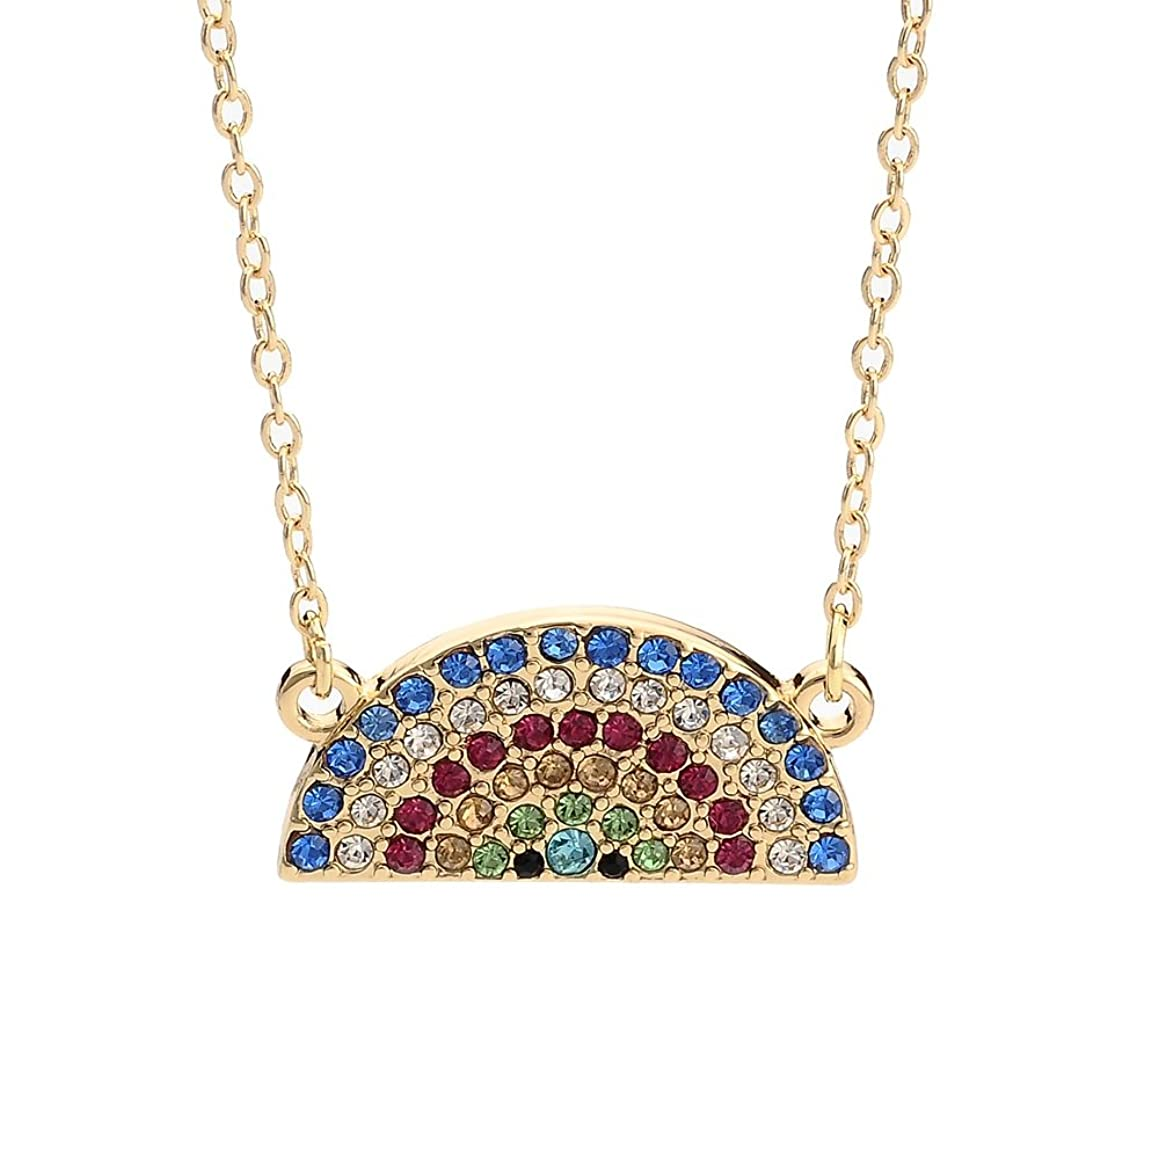 NOUMANDA Delicate Colorful Crystal Rainbow Pendant Statement Necklace Gifts for Women Girls